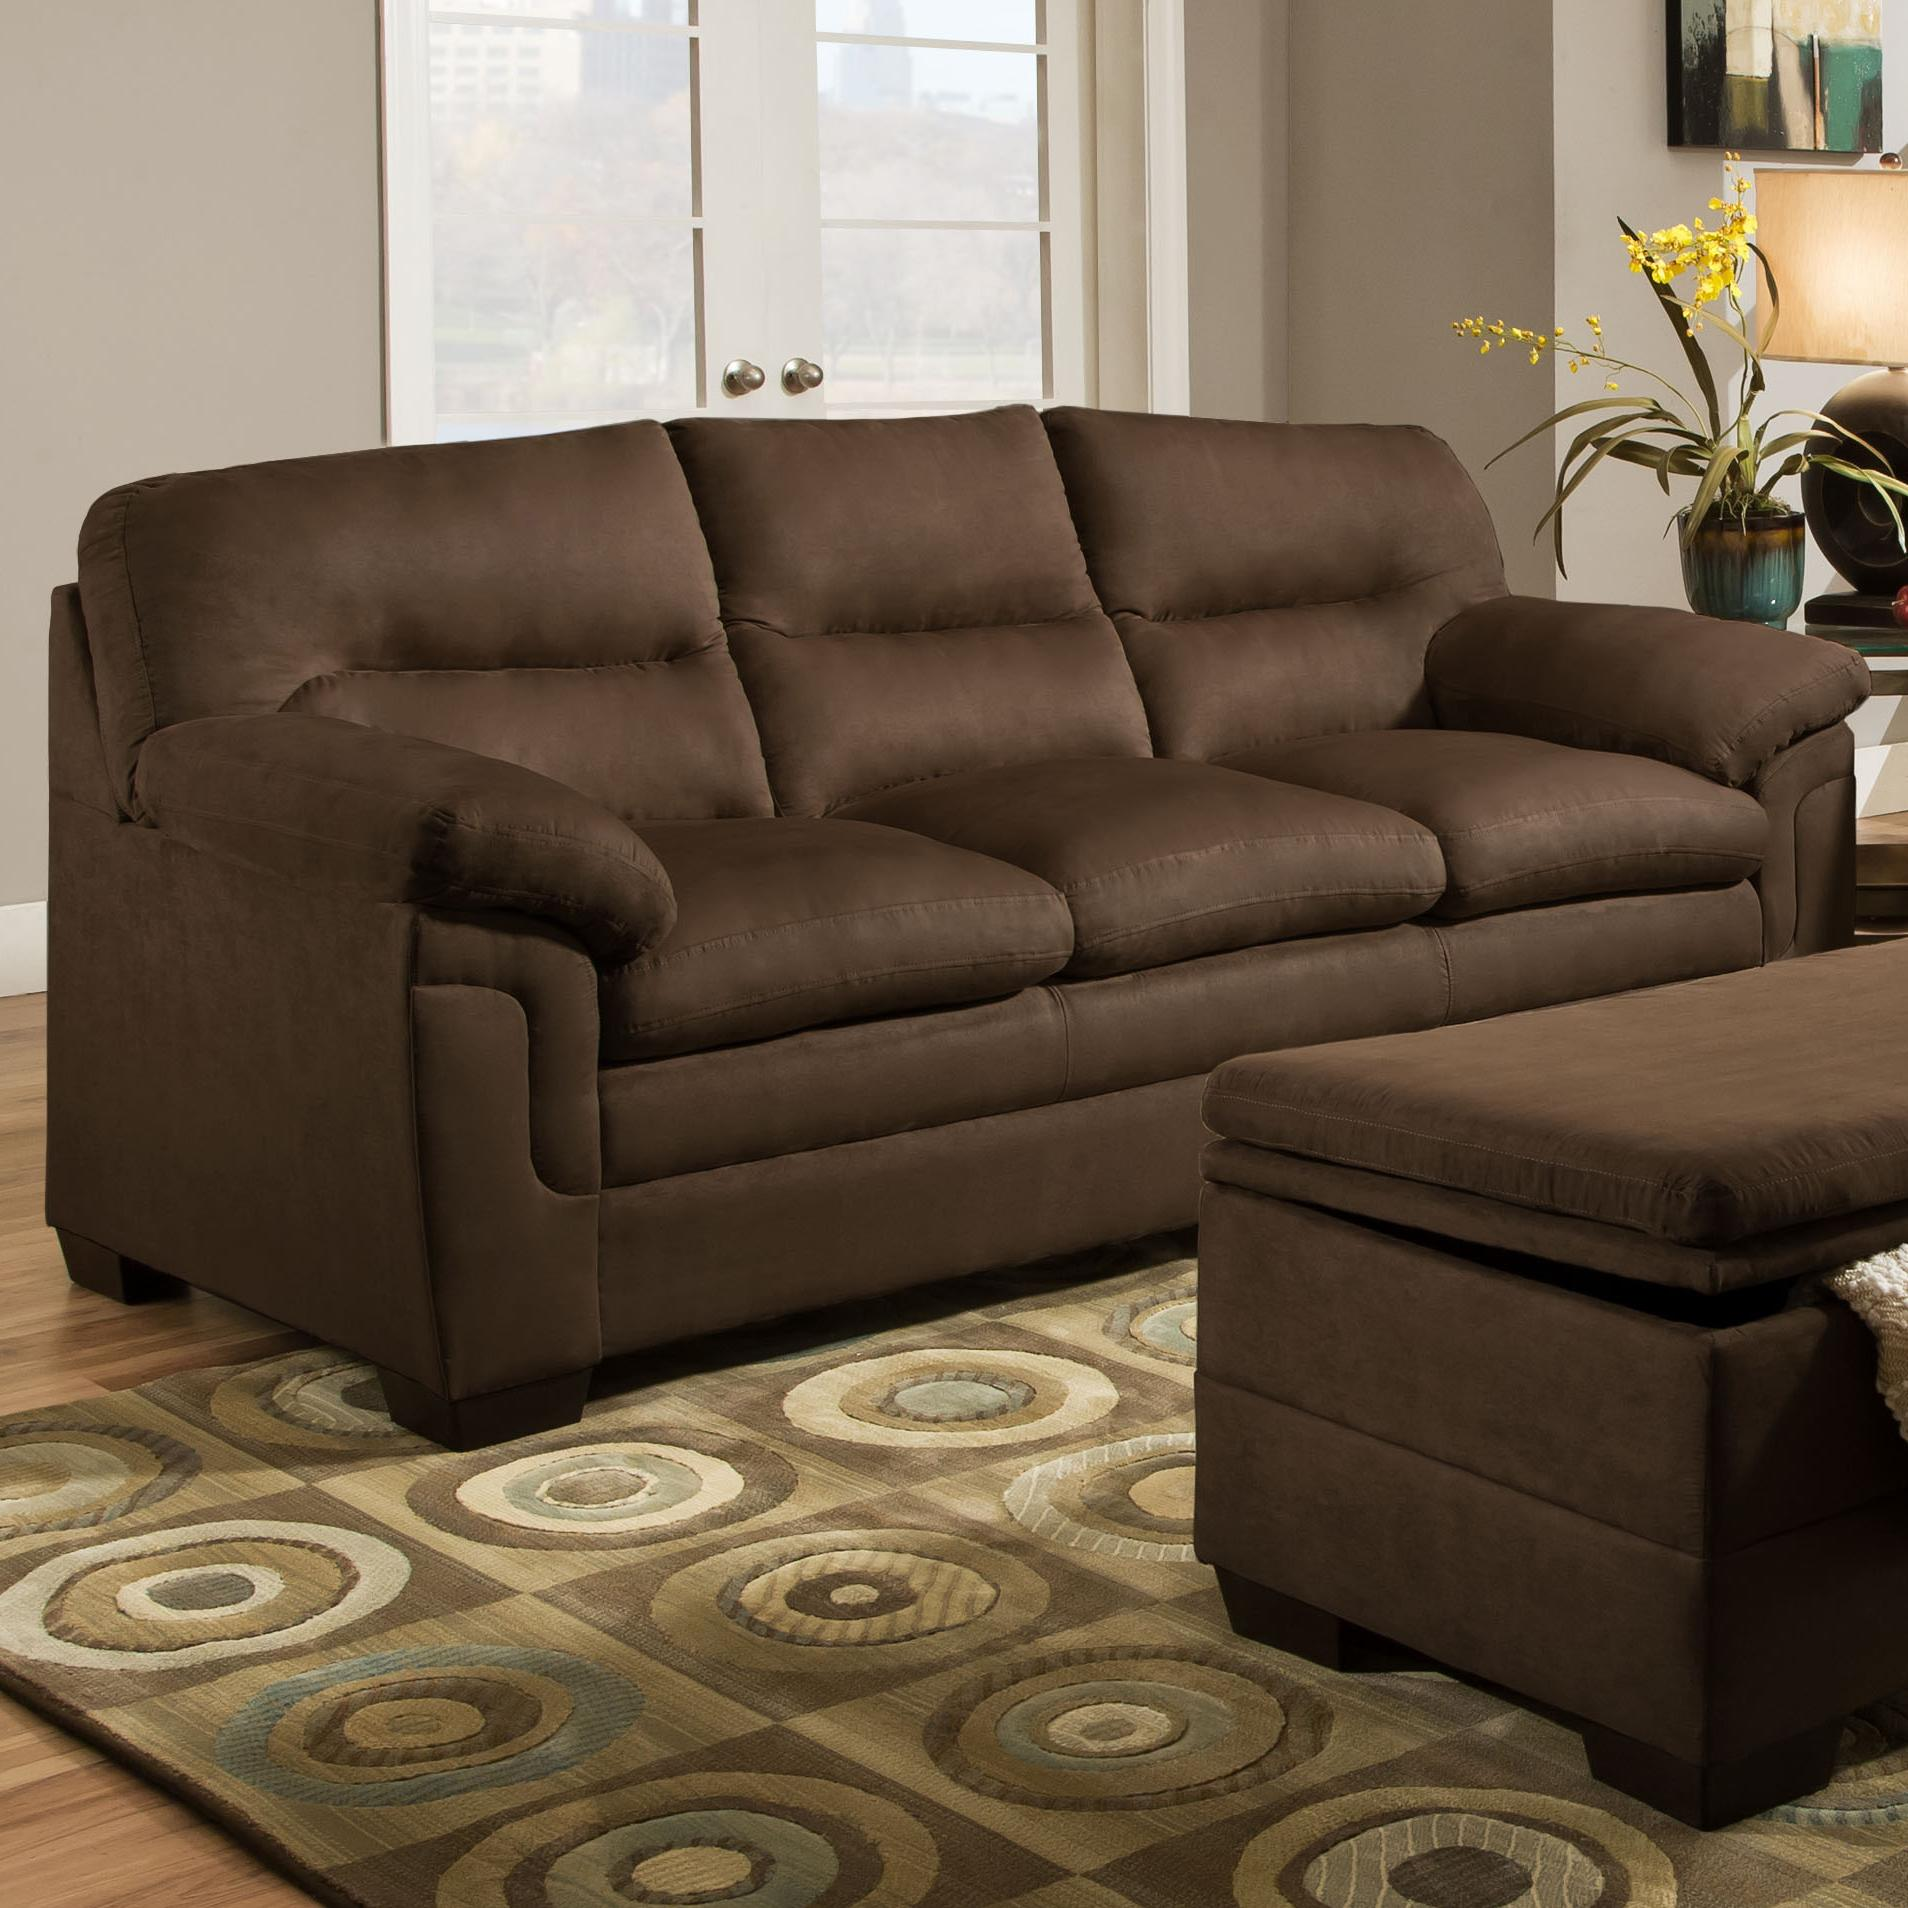 Merveilleux Simmons Upholstery 3615 Casual Stationary Sofa   Item Number: 3615 Sofa Luna  Chocolate